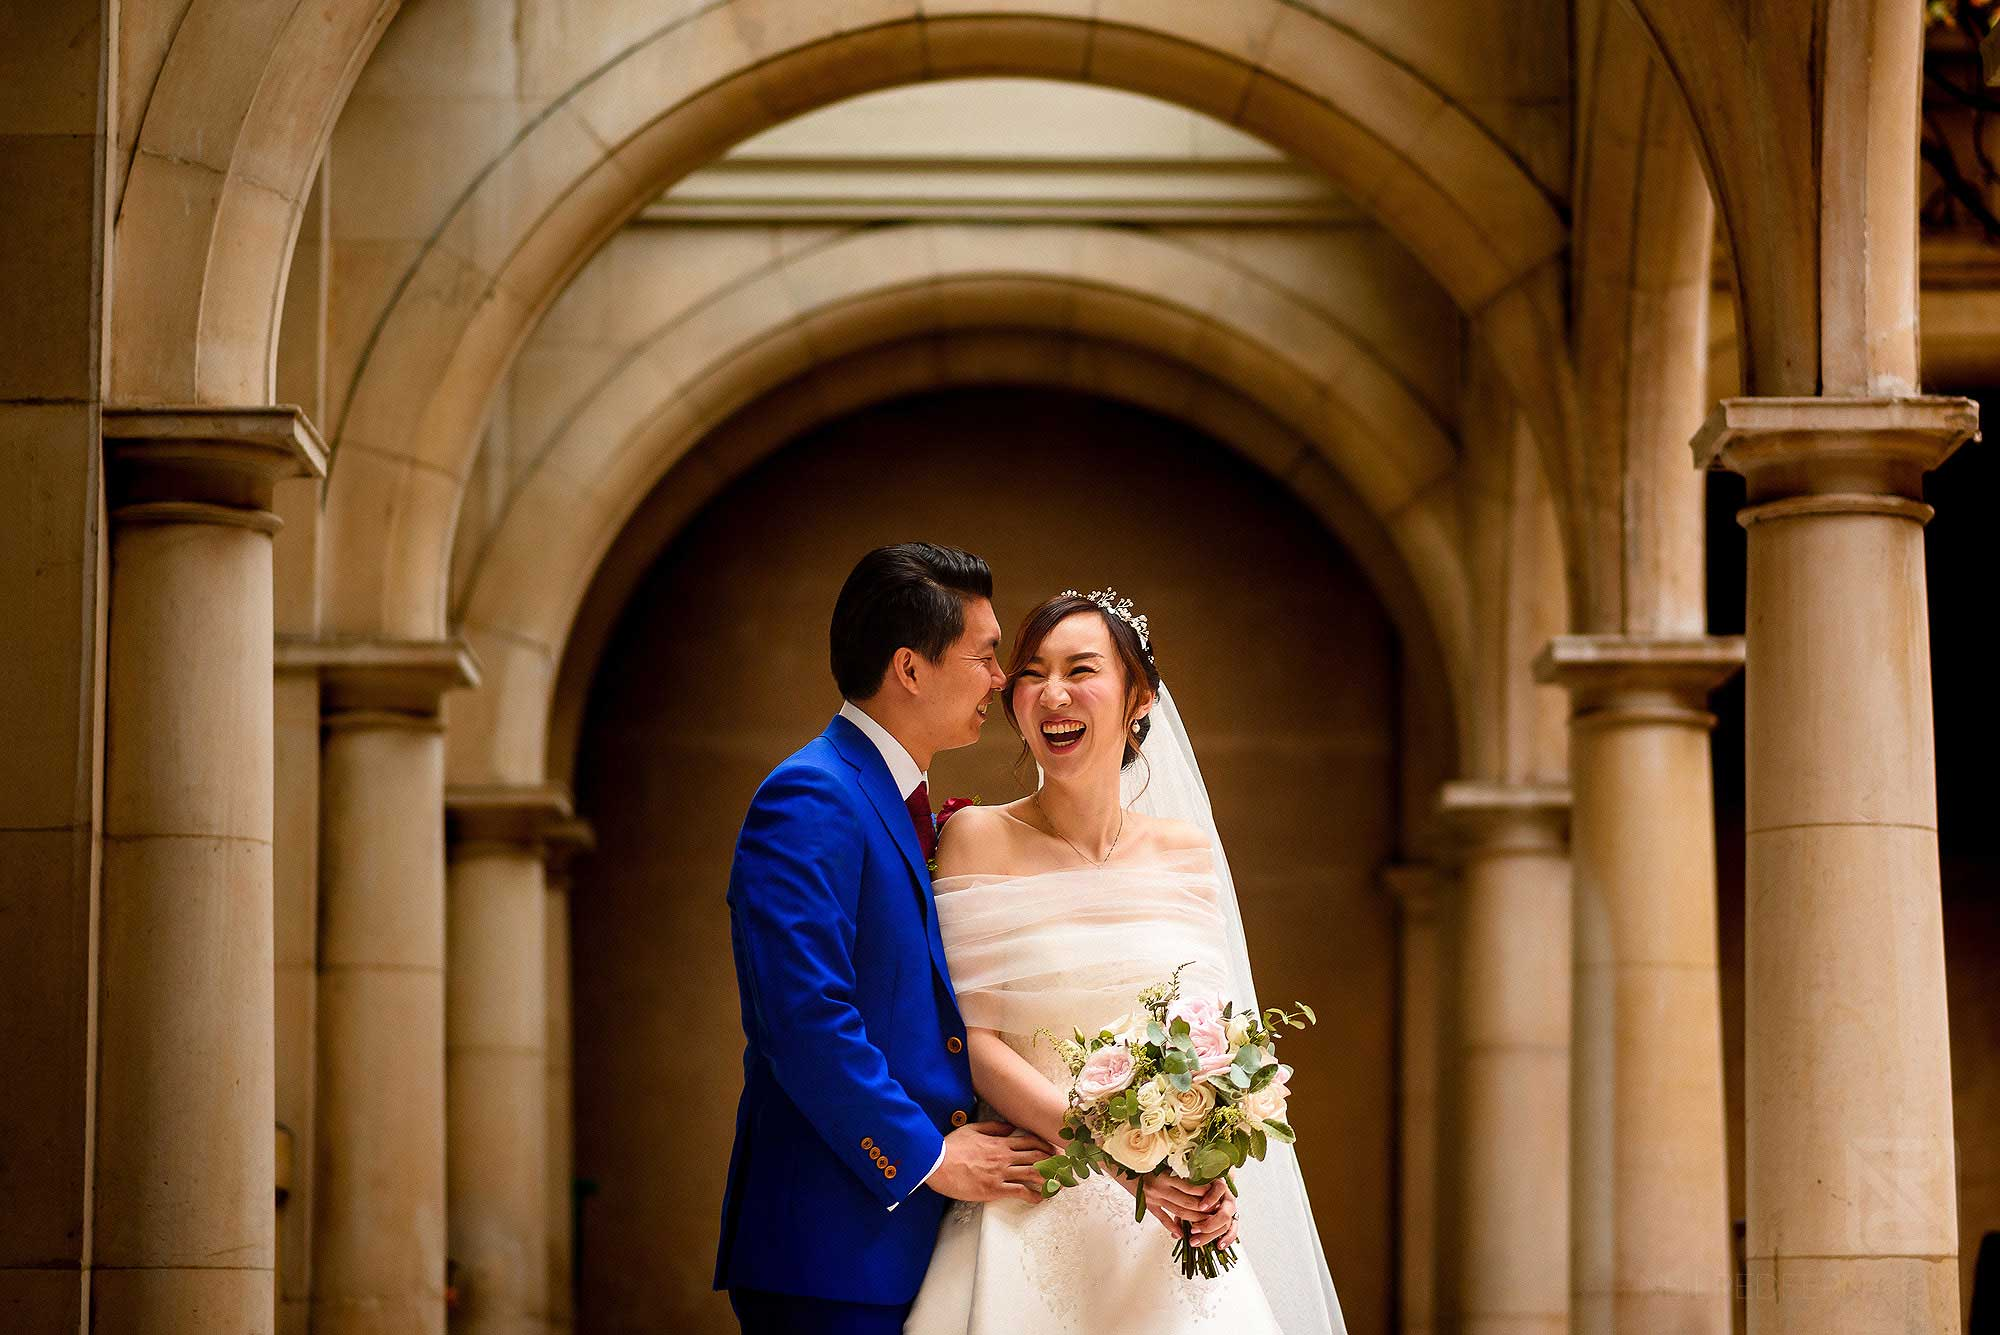 happy bride and groom portrait at Skinner's Hall in London